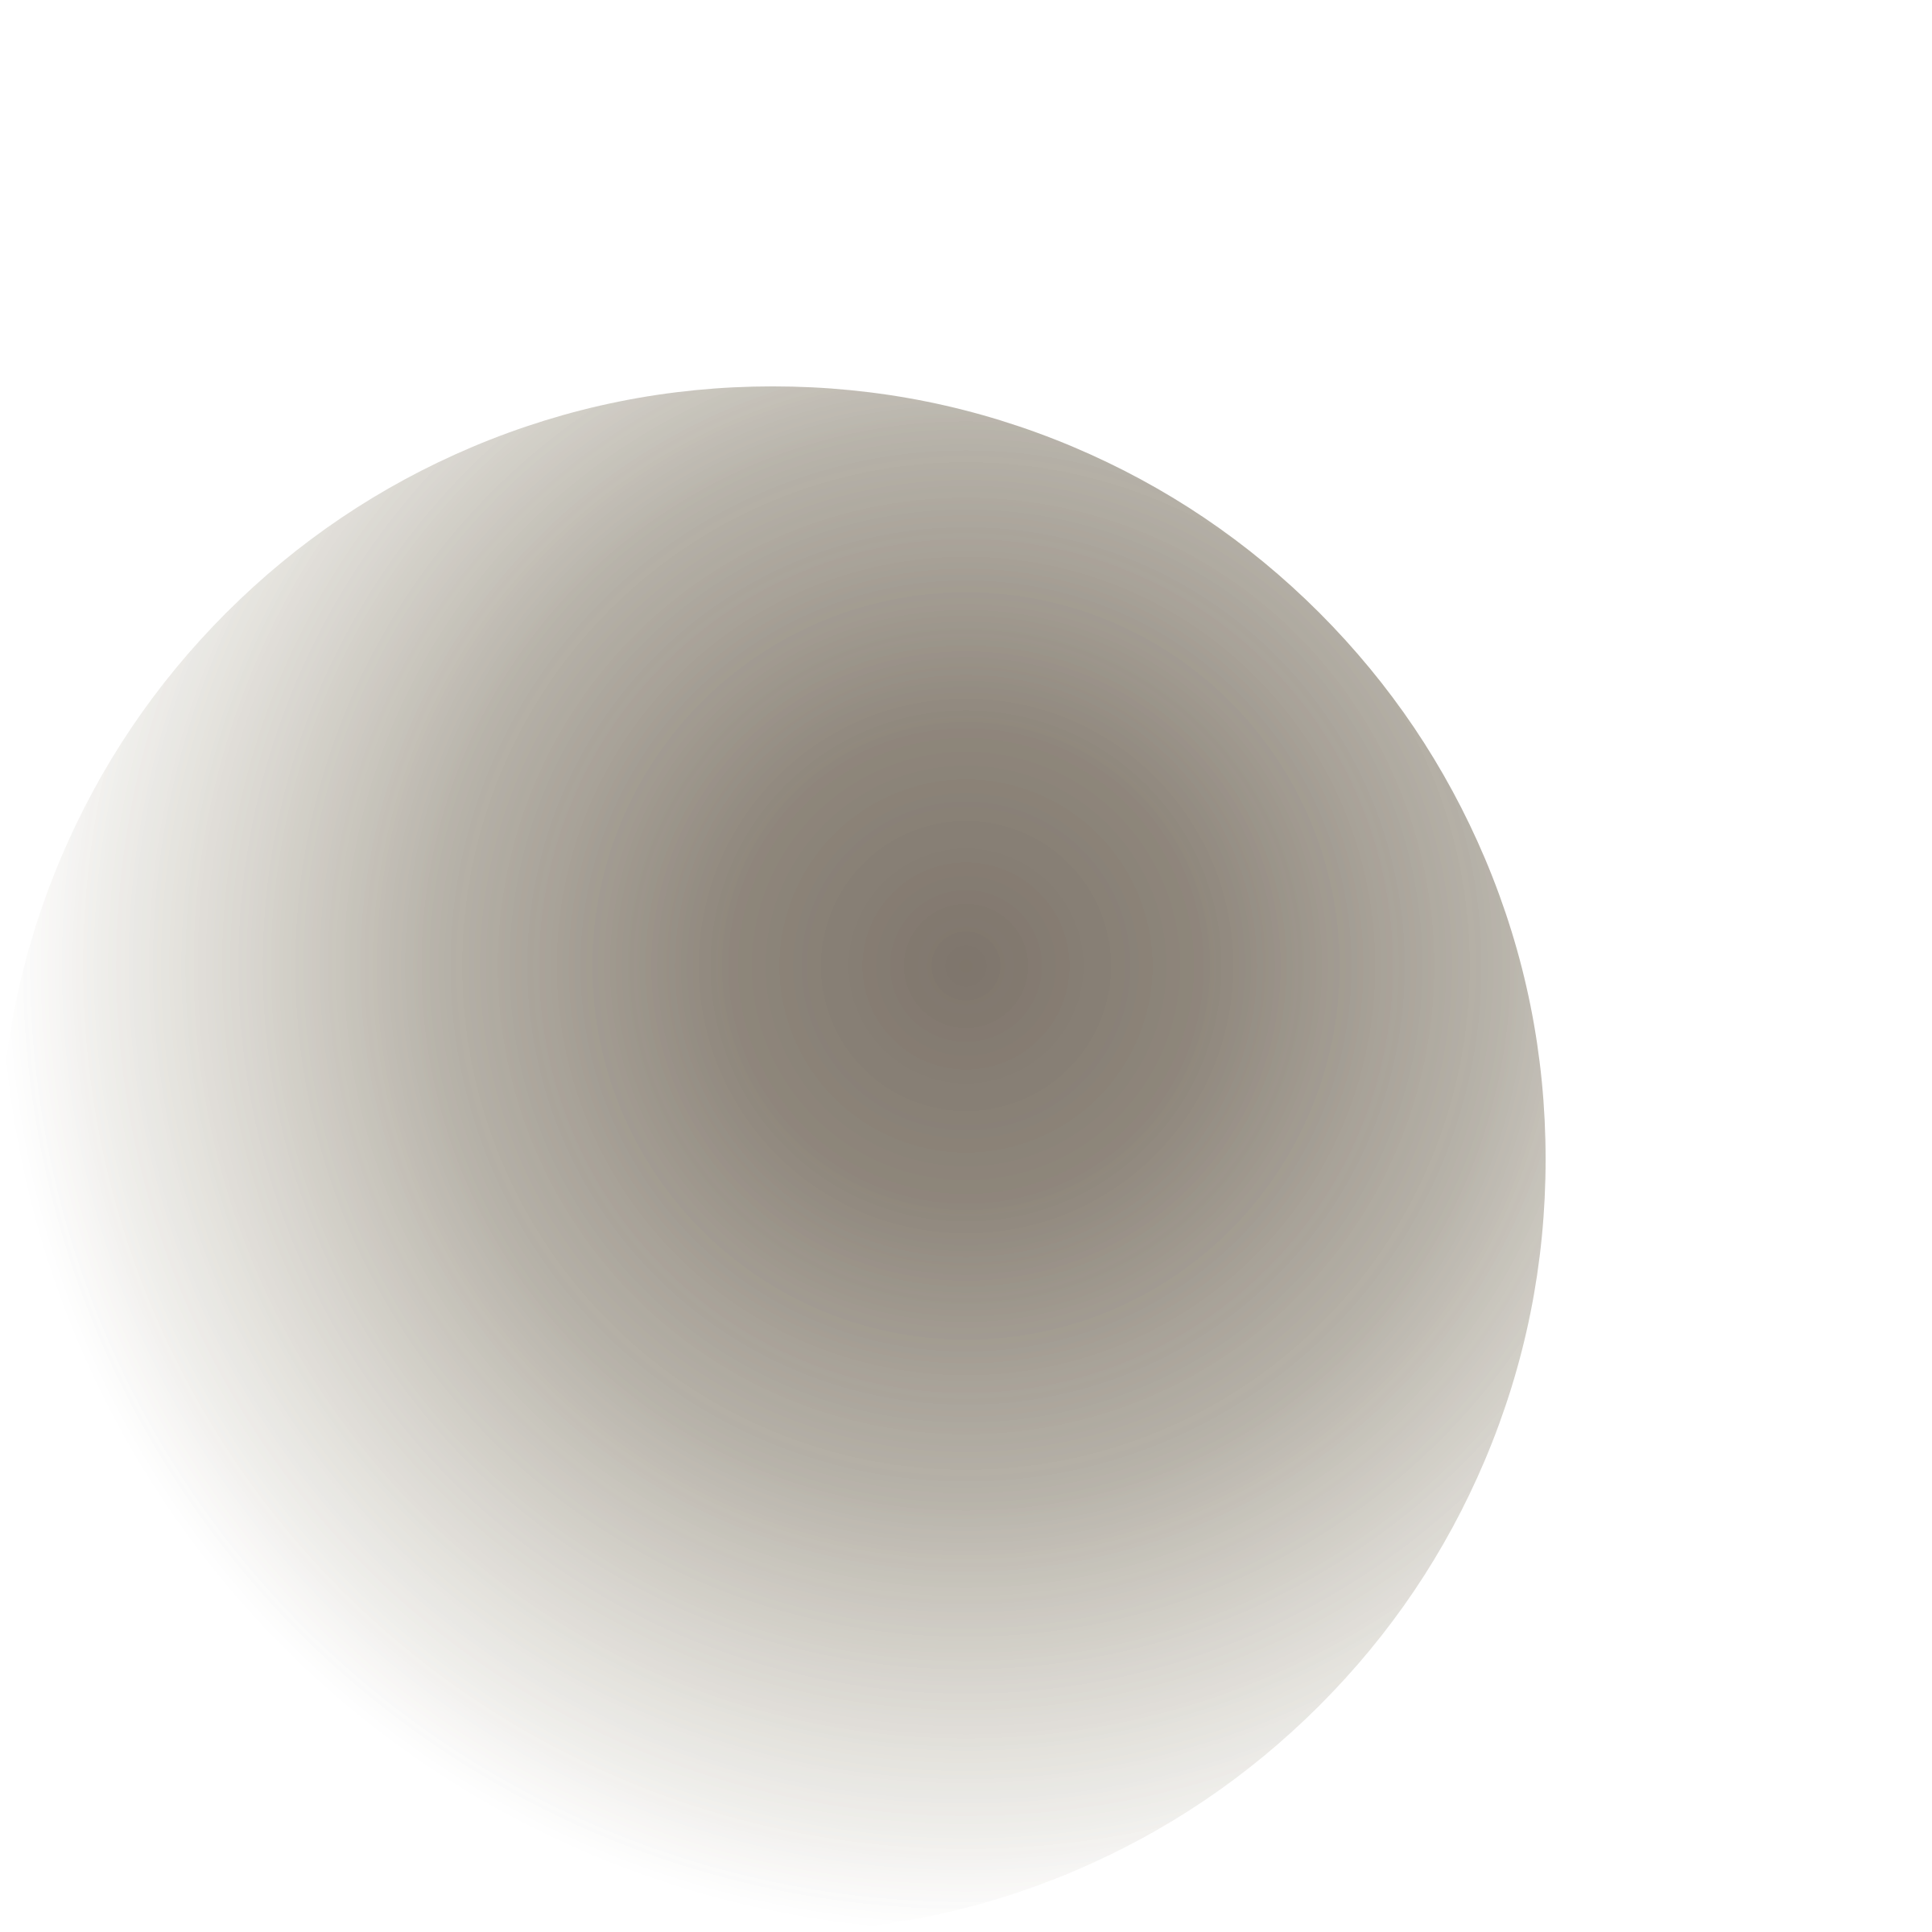 Shadow ball png. Alpine landscape brown percent